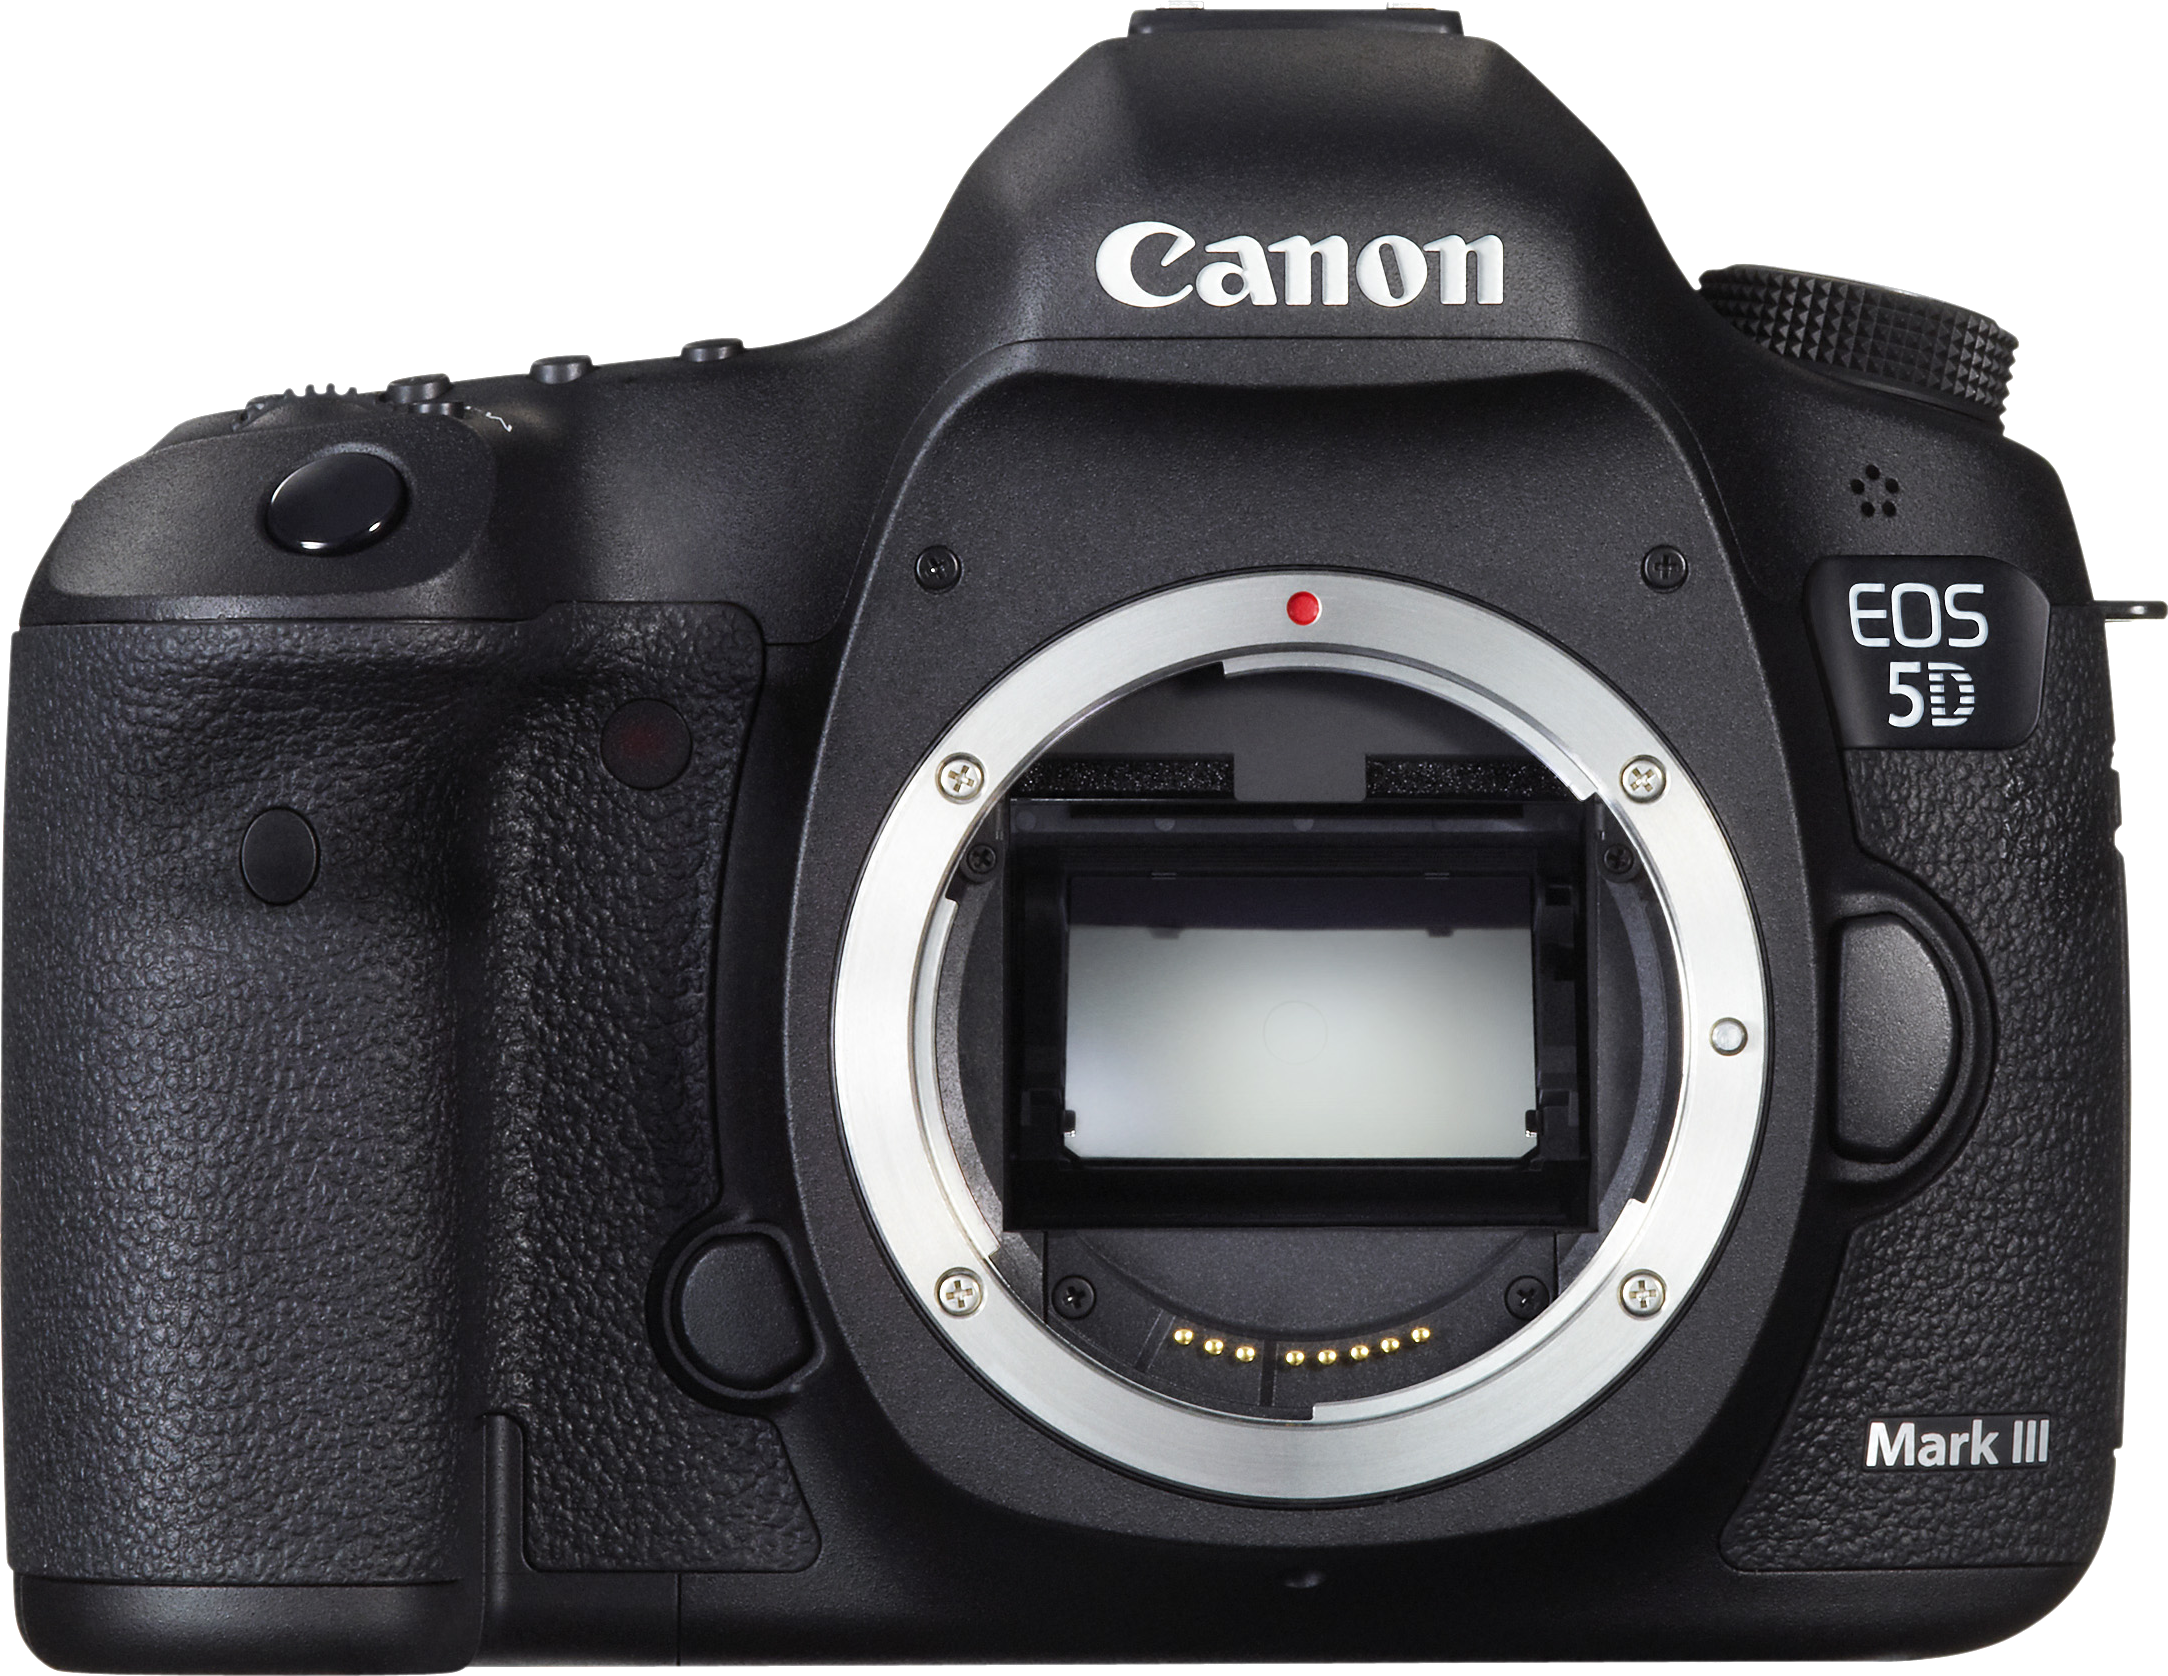 Canon's third generation high megapixel full frame DSLR.  A great choice for stills and video.